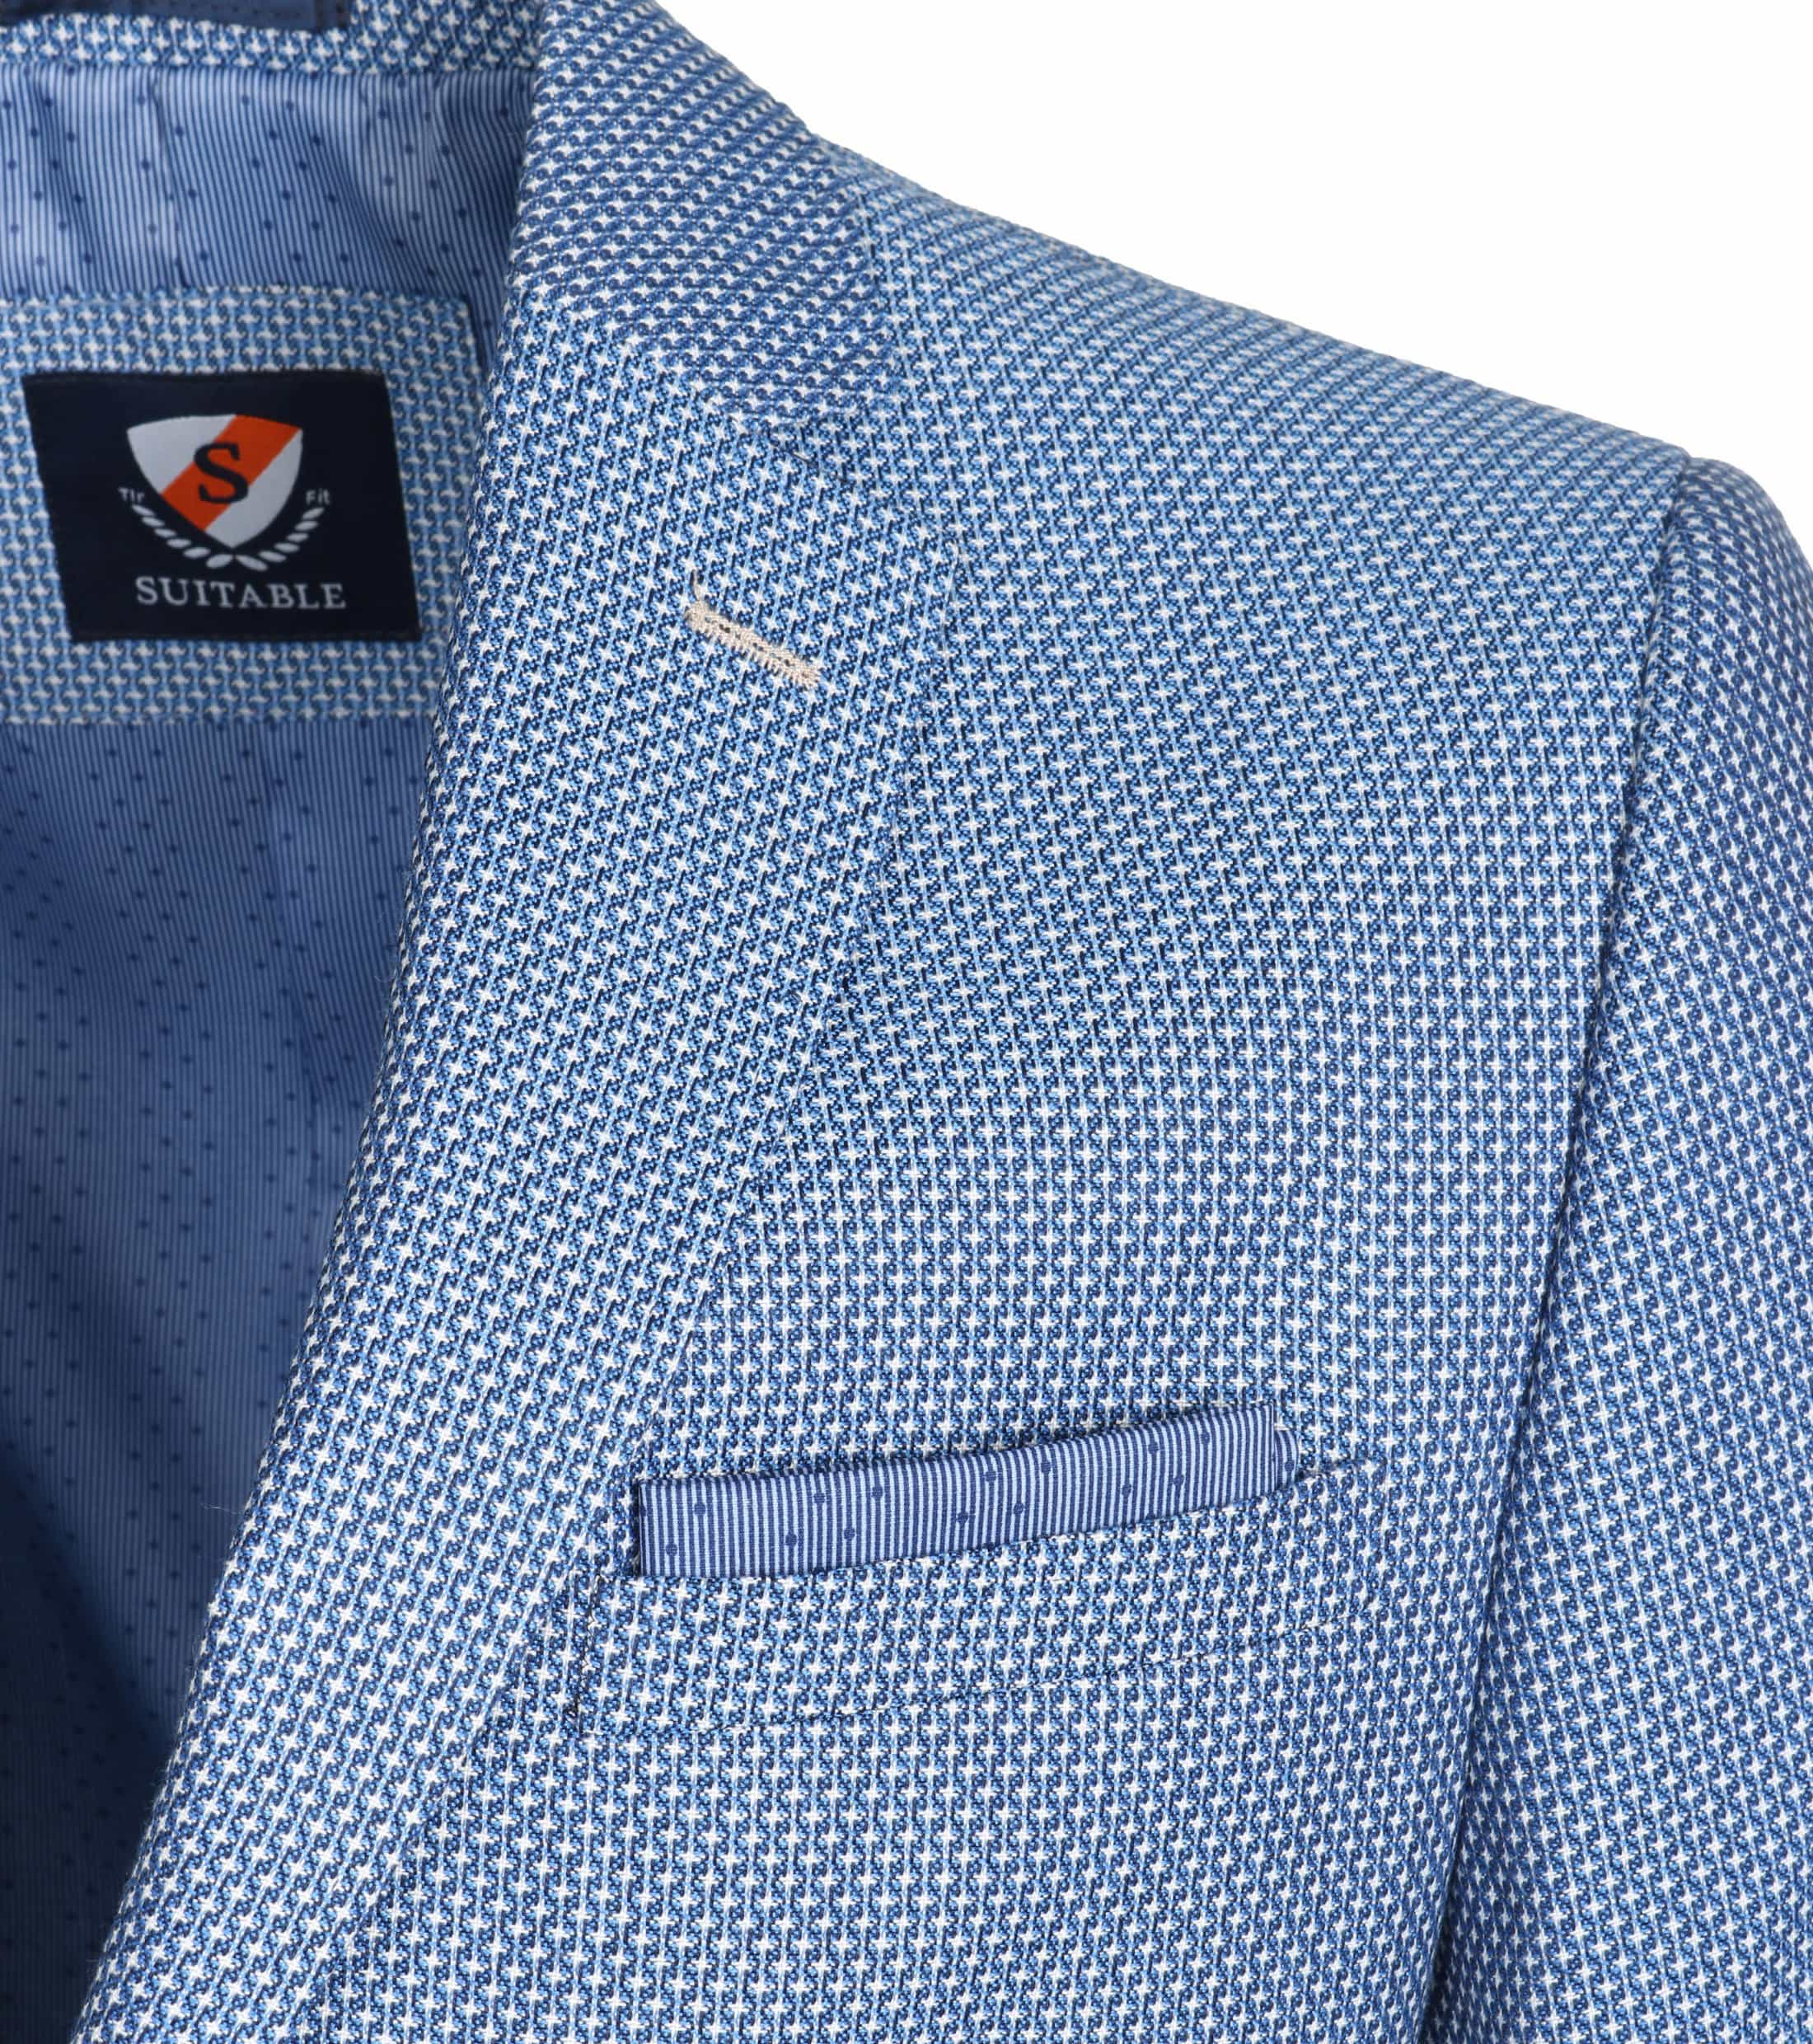 Suitable Blazer Frejus Blau foto 3